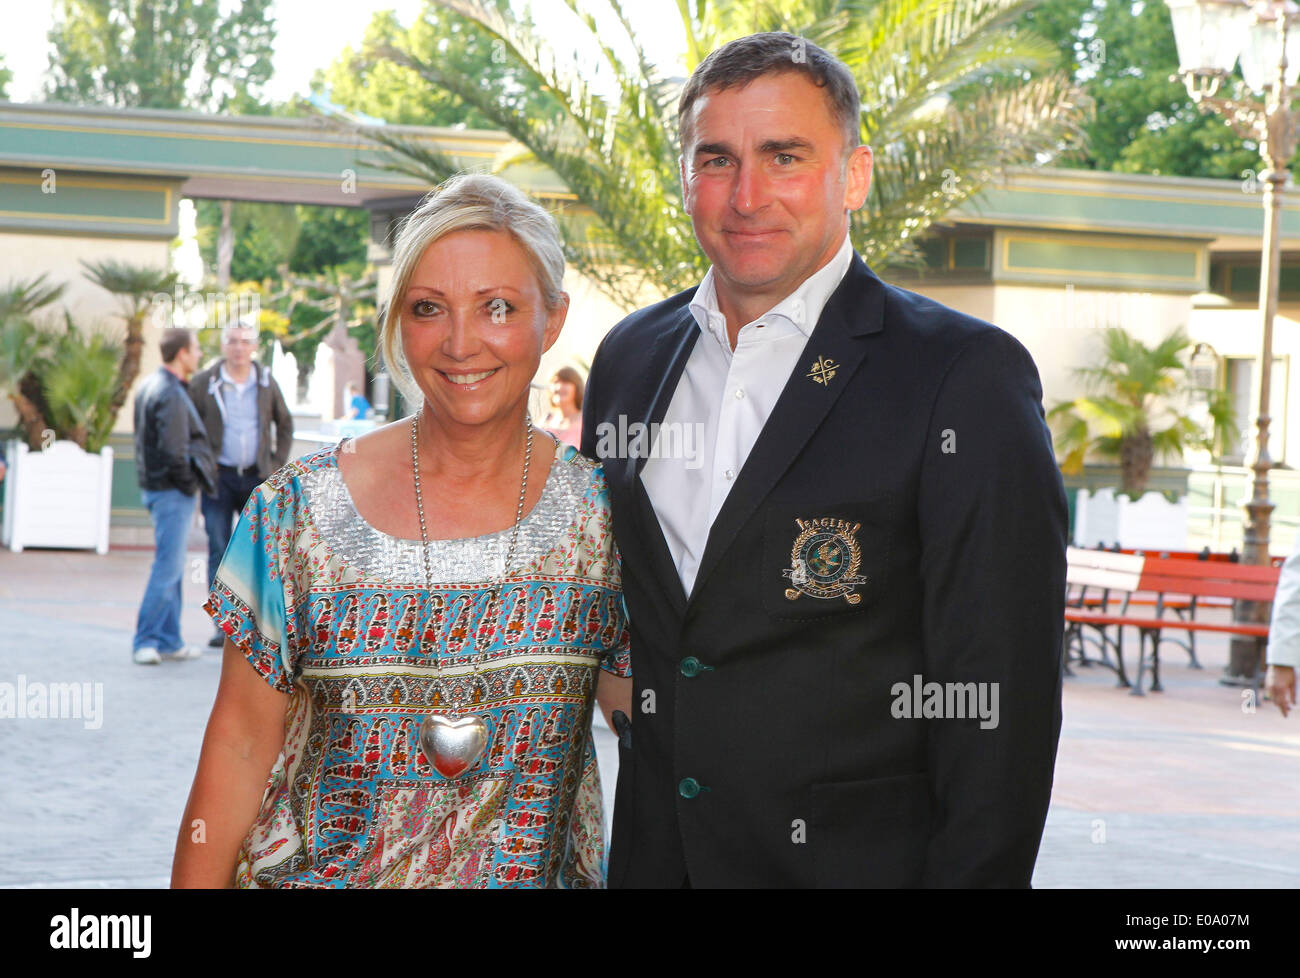 Herbolzheim, Germany - May 5, 2014: Eagles Charity Golf Cup and Gala at Golfclub Breisgau and Europa Park, Rust with Football Champion Stefan Kuntz and wife Sabine Credit:  dpa picture alliance/Alamy Live News - Stock Image